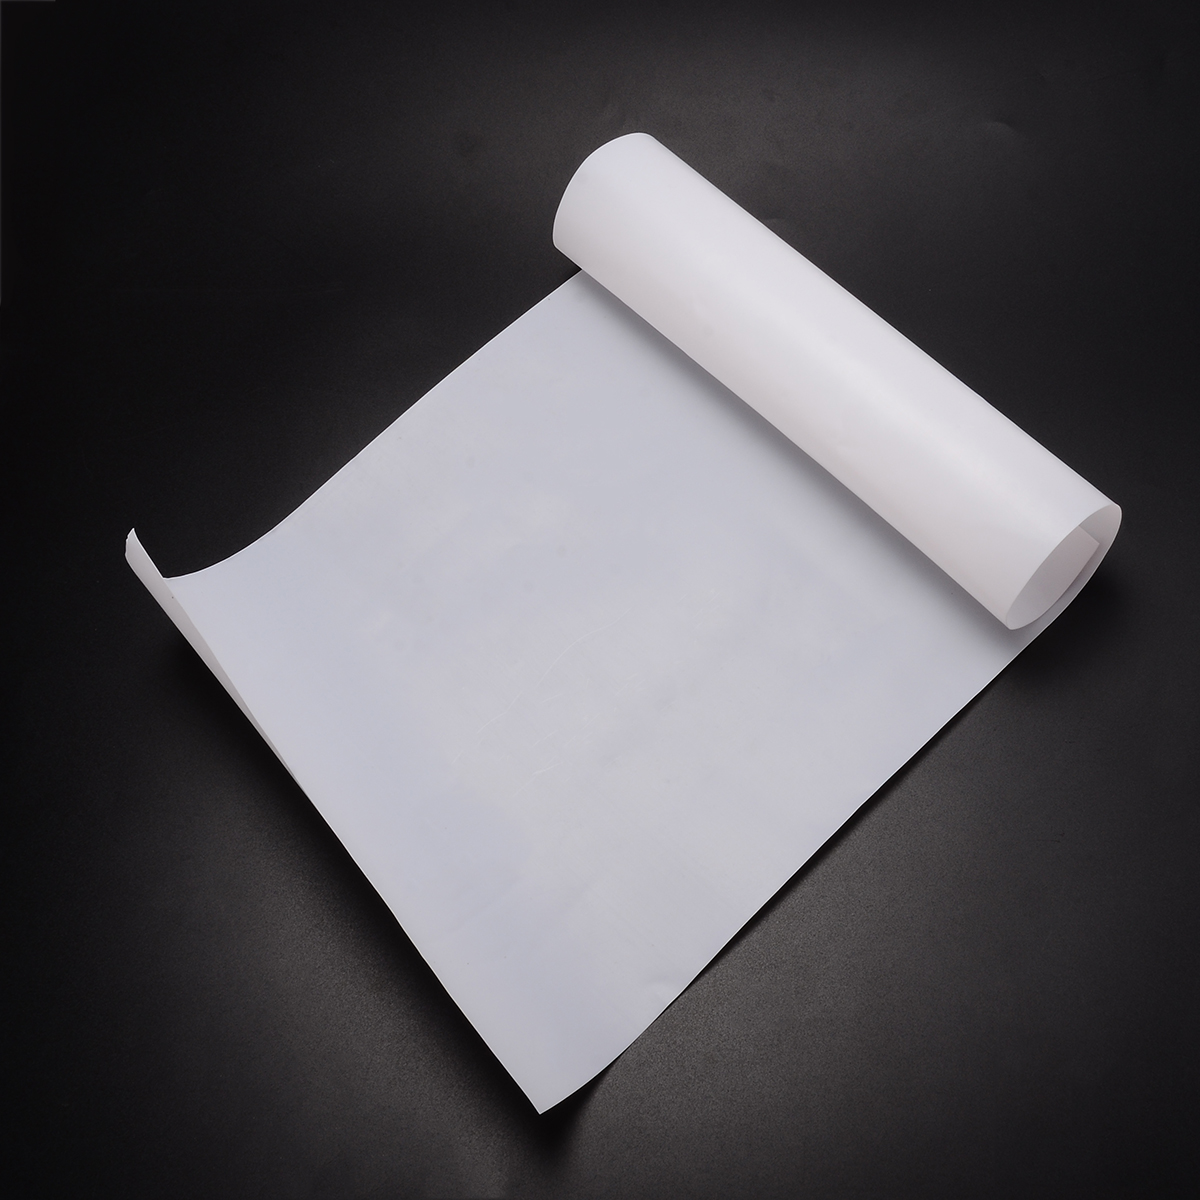 0.3mm Thickness White PTFE Film/Sheet Virgin 500x250mm With Corrosion-resistance